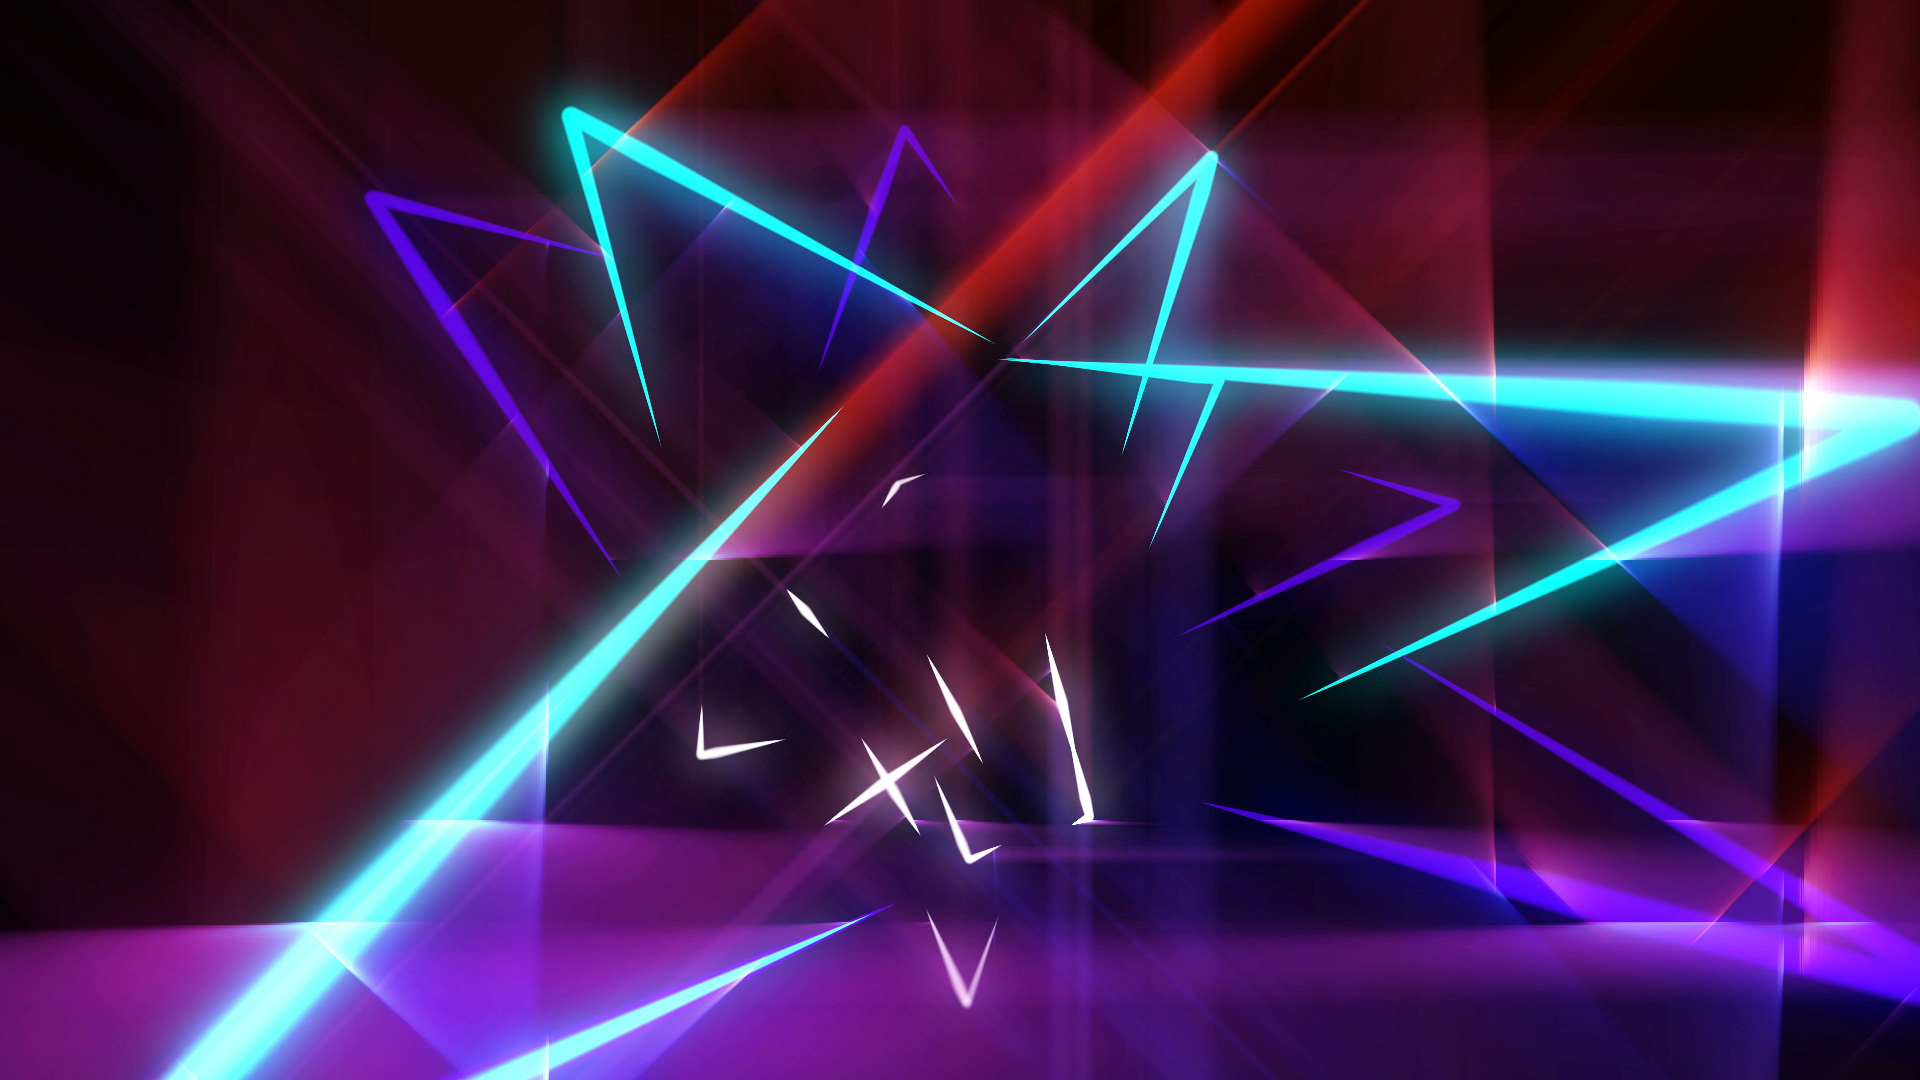 Neon Lasers And Lights VJ Pack - Gesh.tv